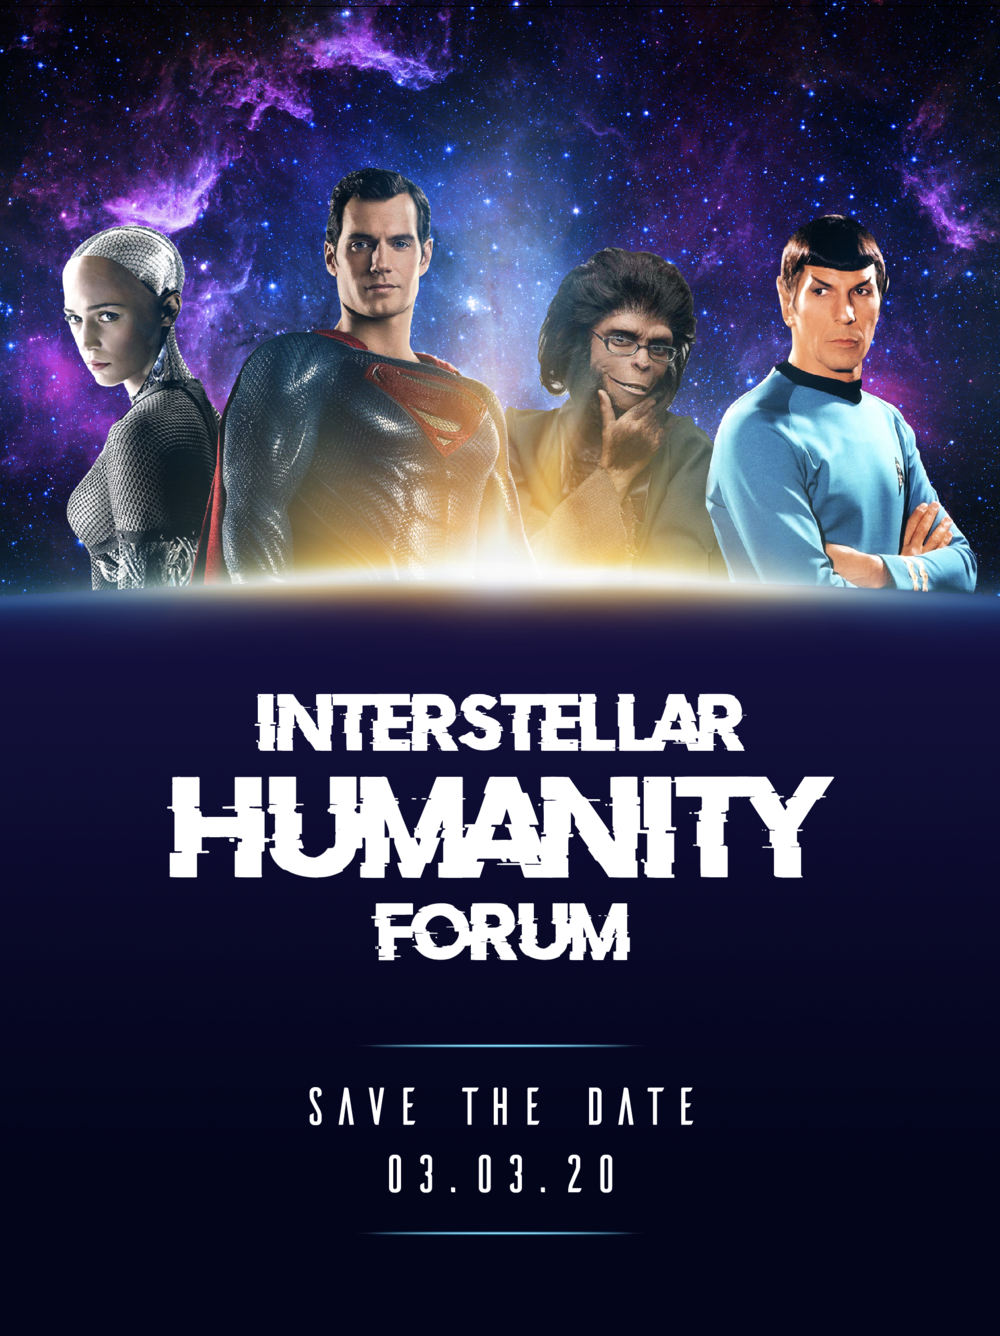 STD Interstellar Humanity Forum.png